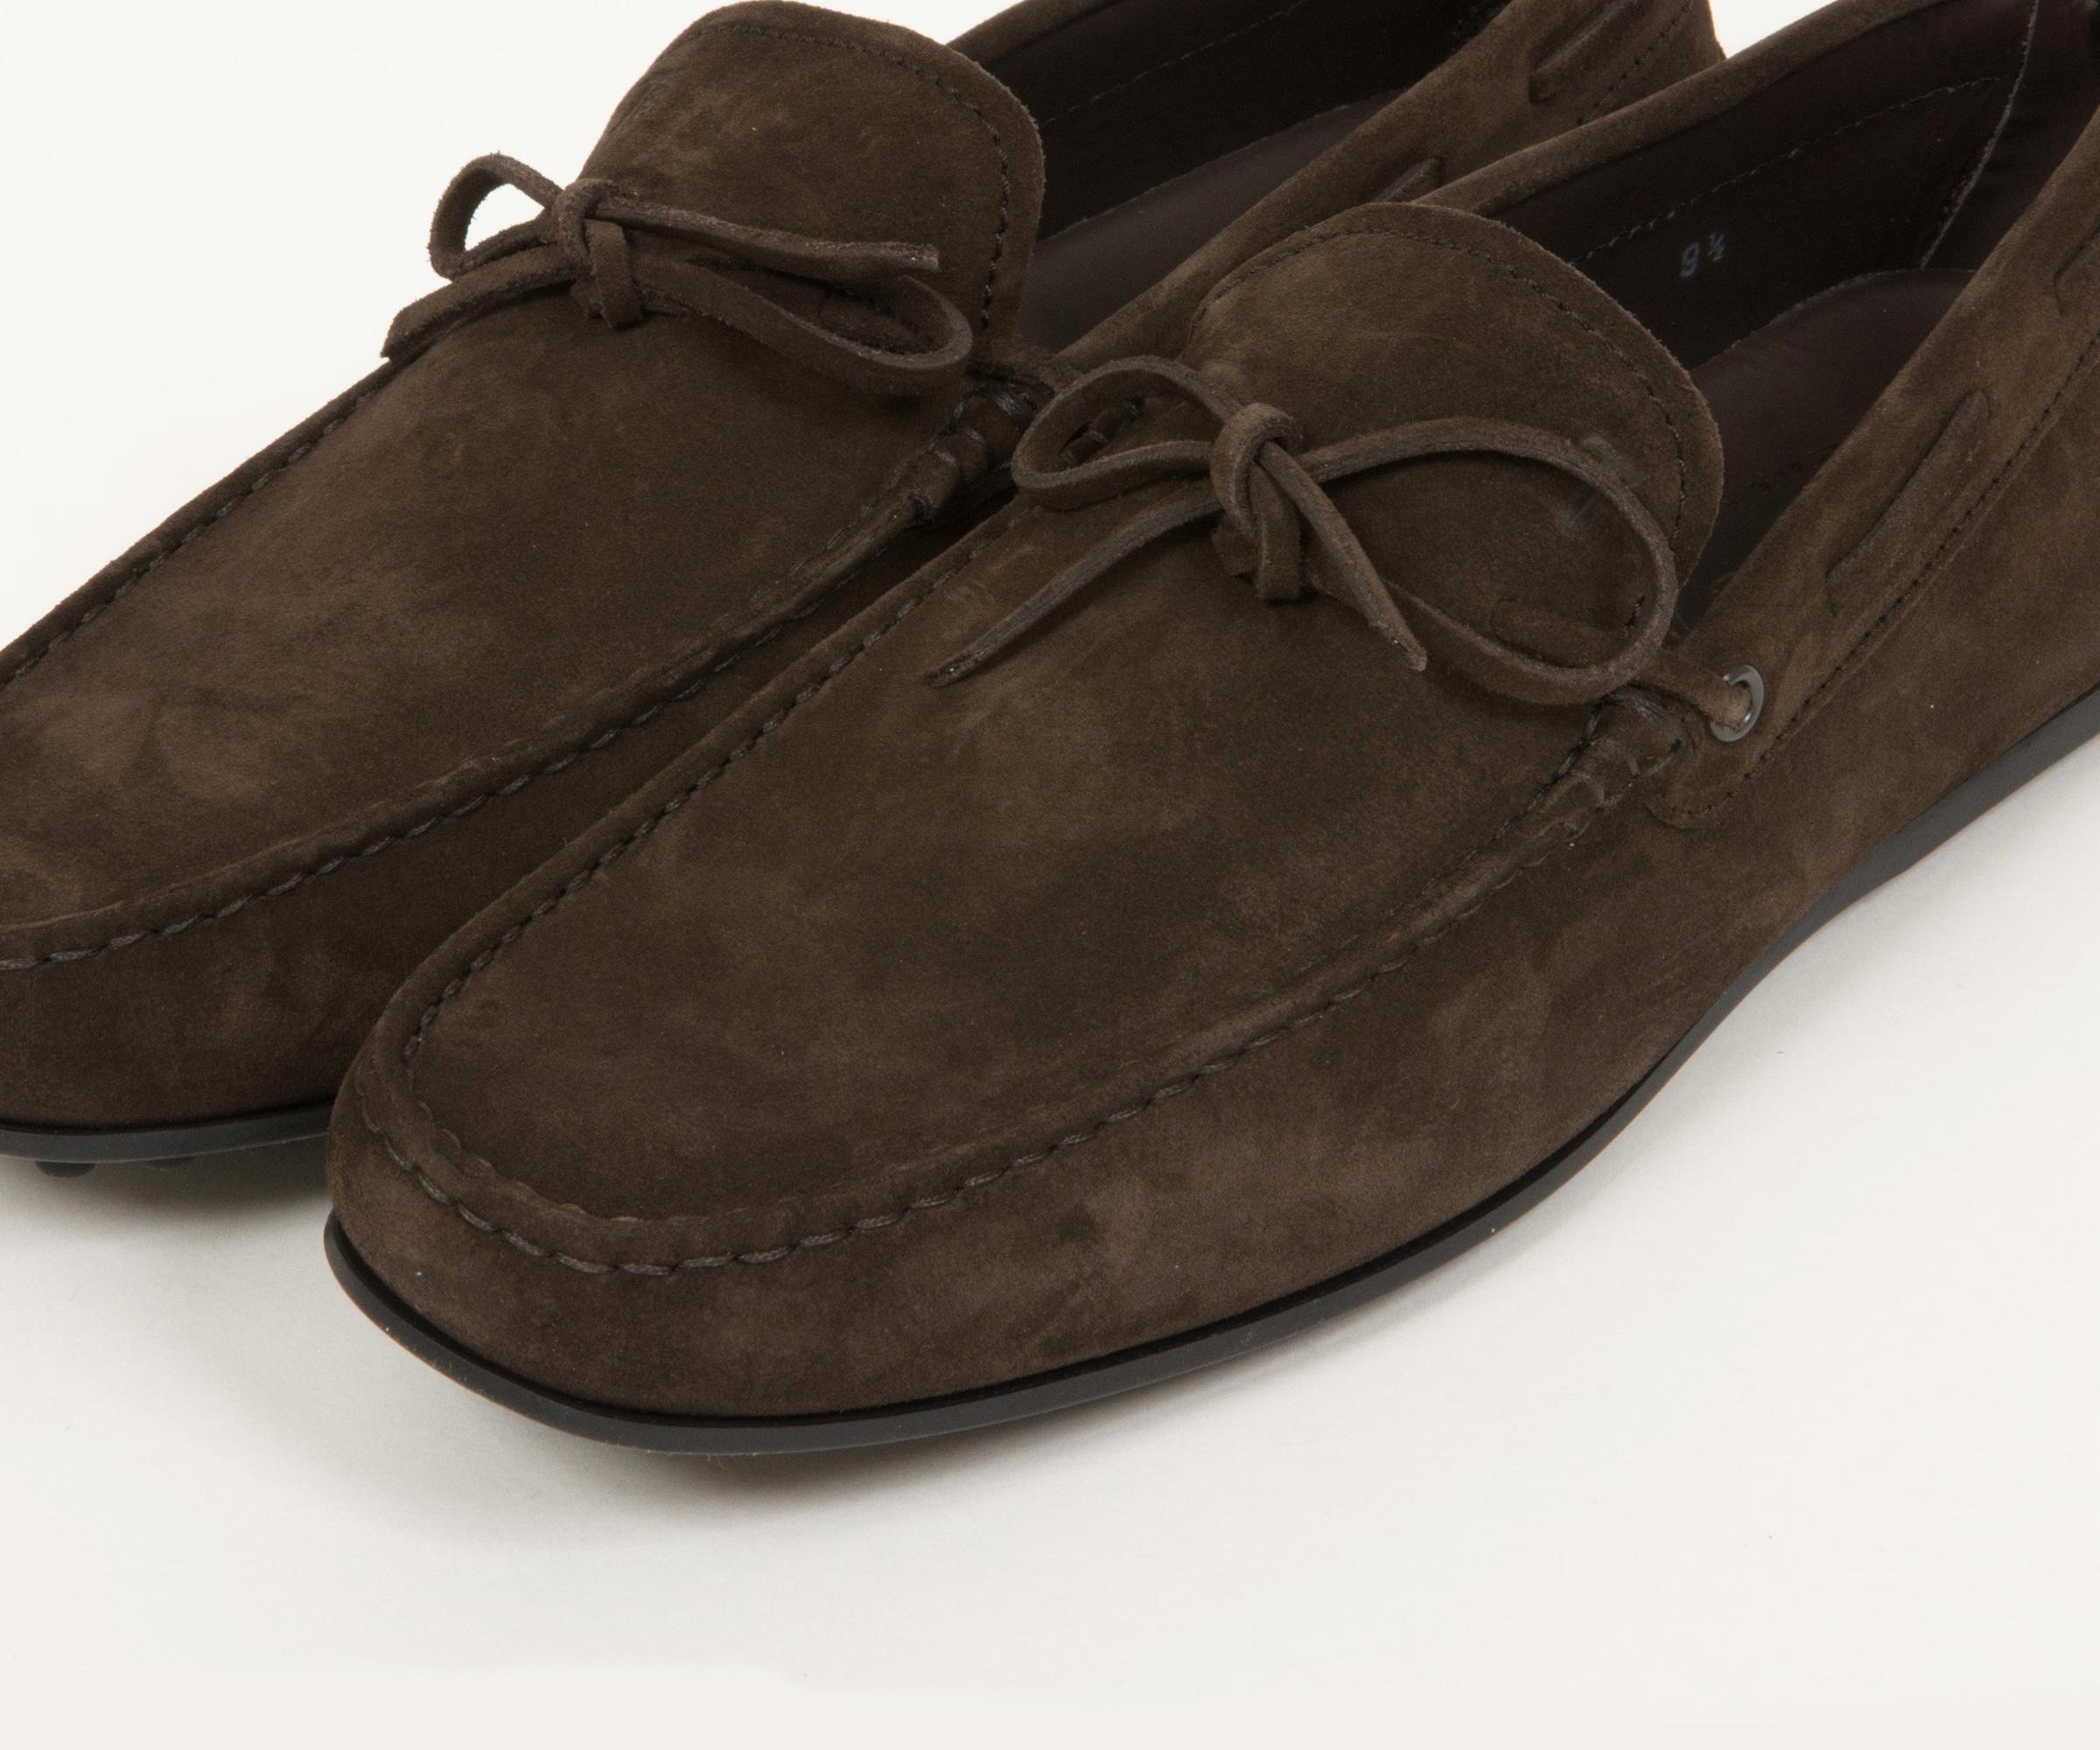 2f04539965e Tod s - City Gommino Suede Driving Shoes Dark Brown for Men - Lyst. View  fullscreen